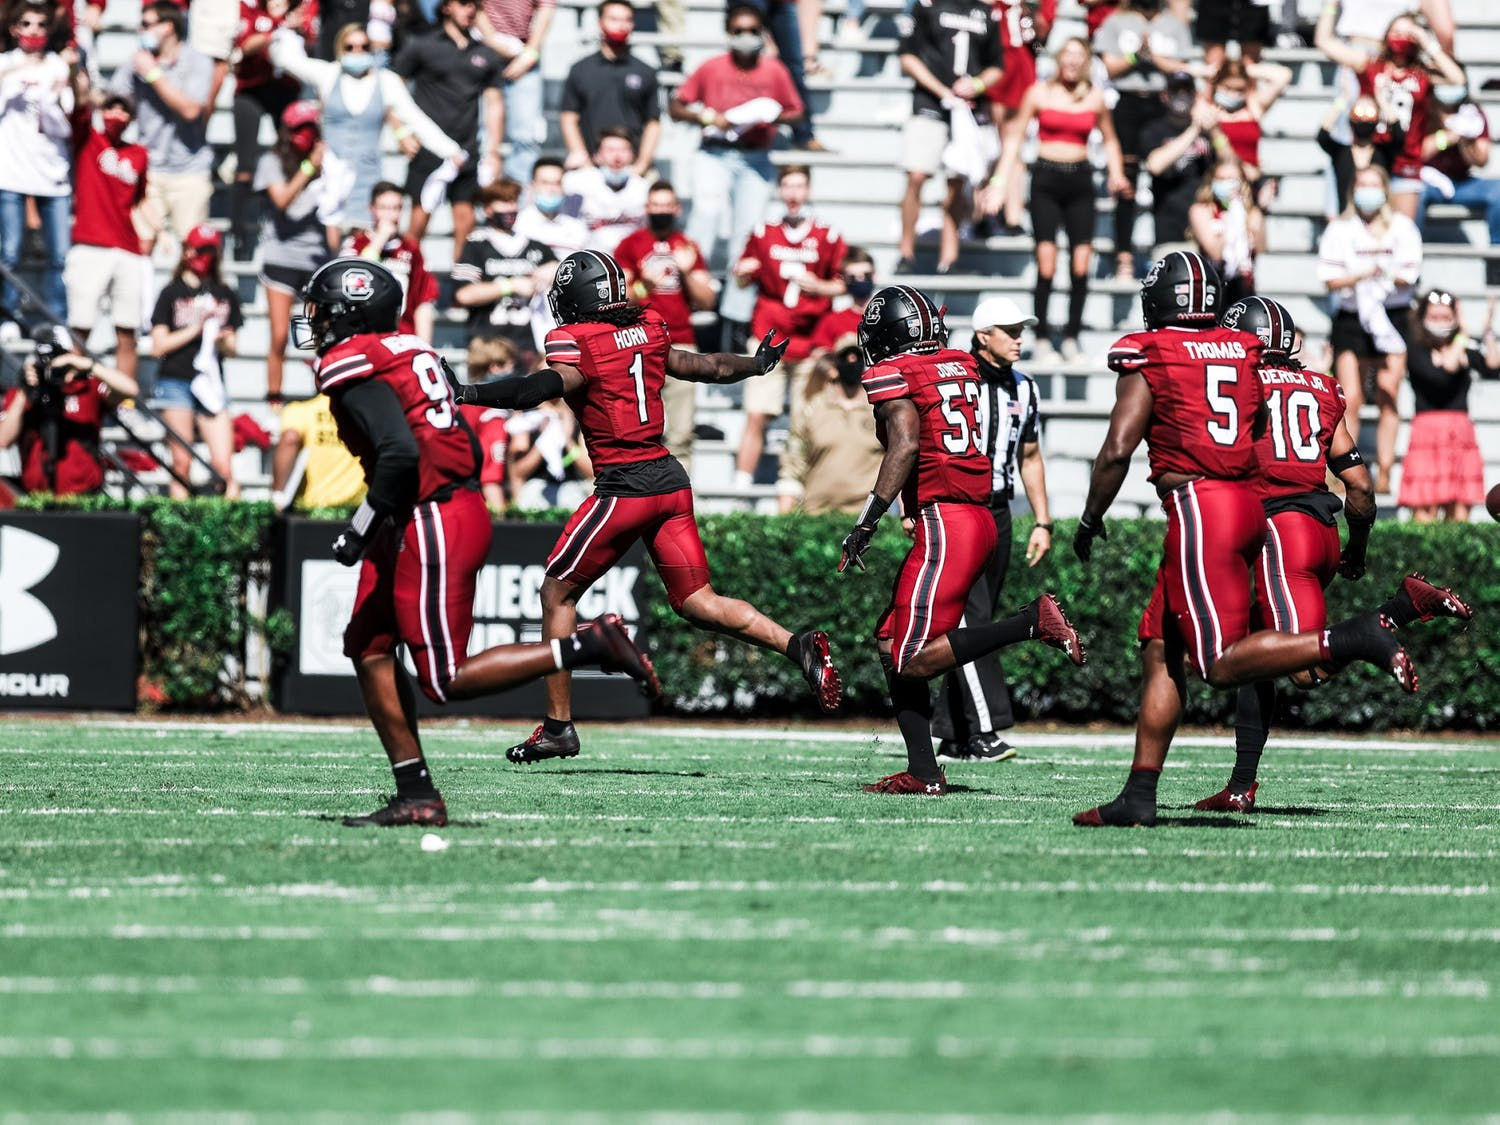 Gamecock defensive players celebrate during the game against the Auburn Tigers. The Gamecocks won 30-22 at home against the Tigers on Saturday, Oct. 17.